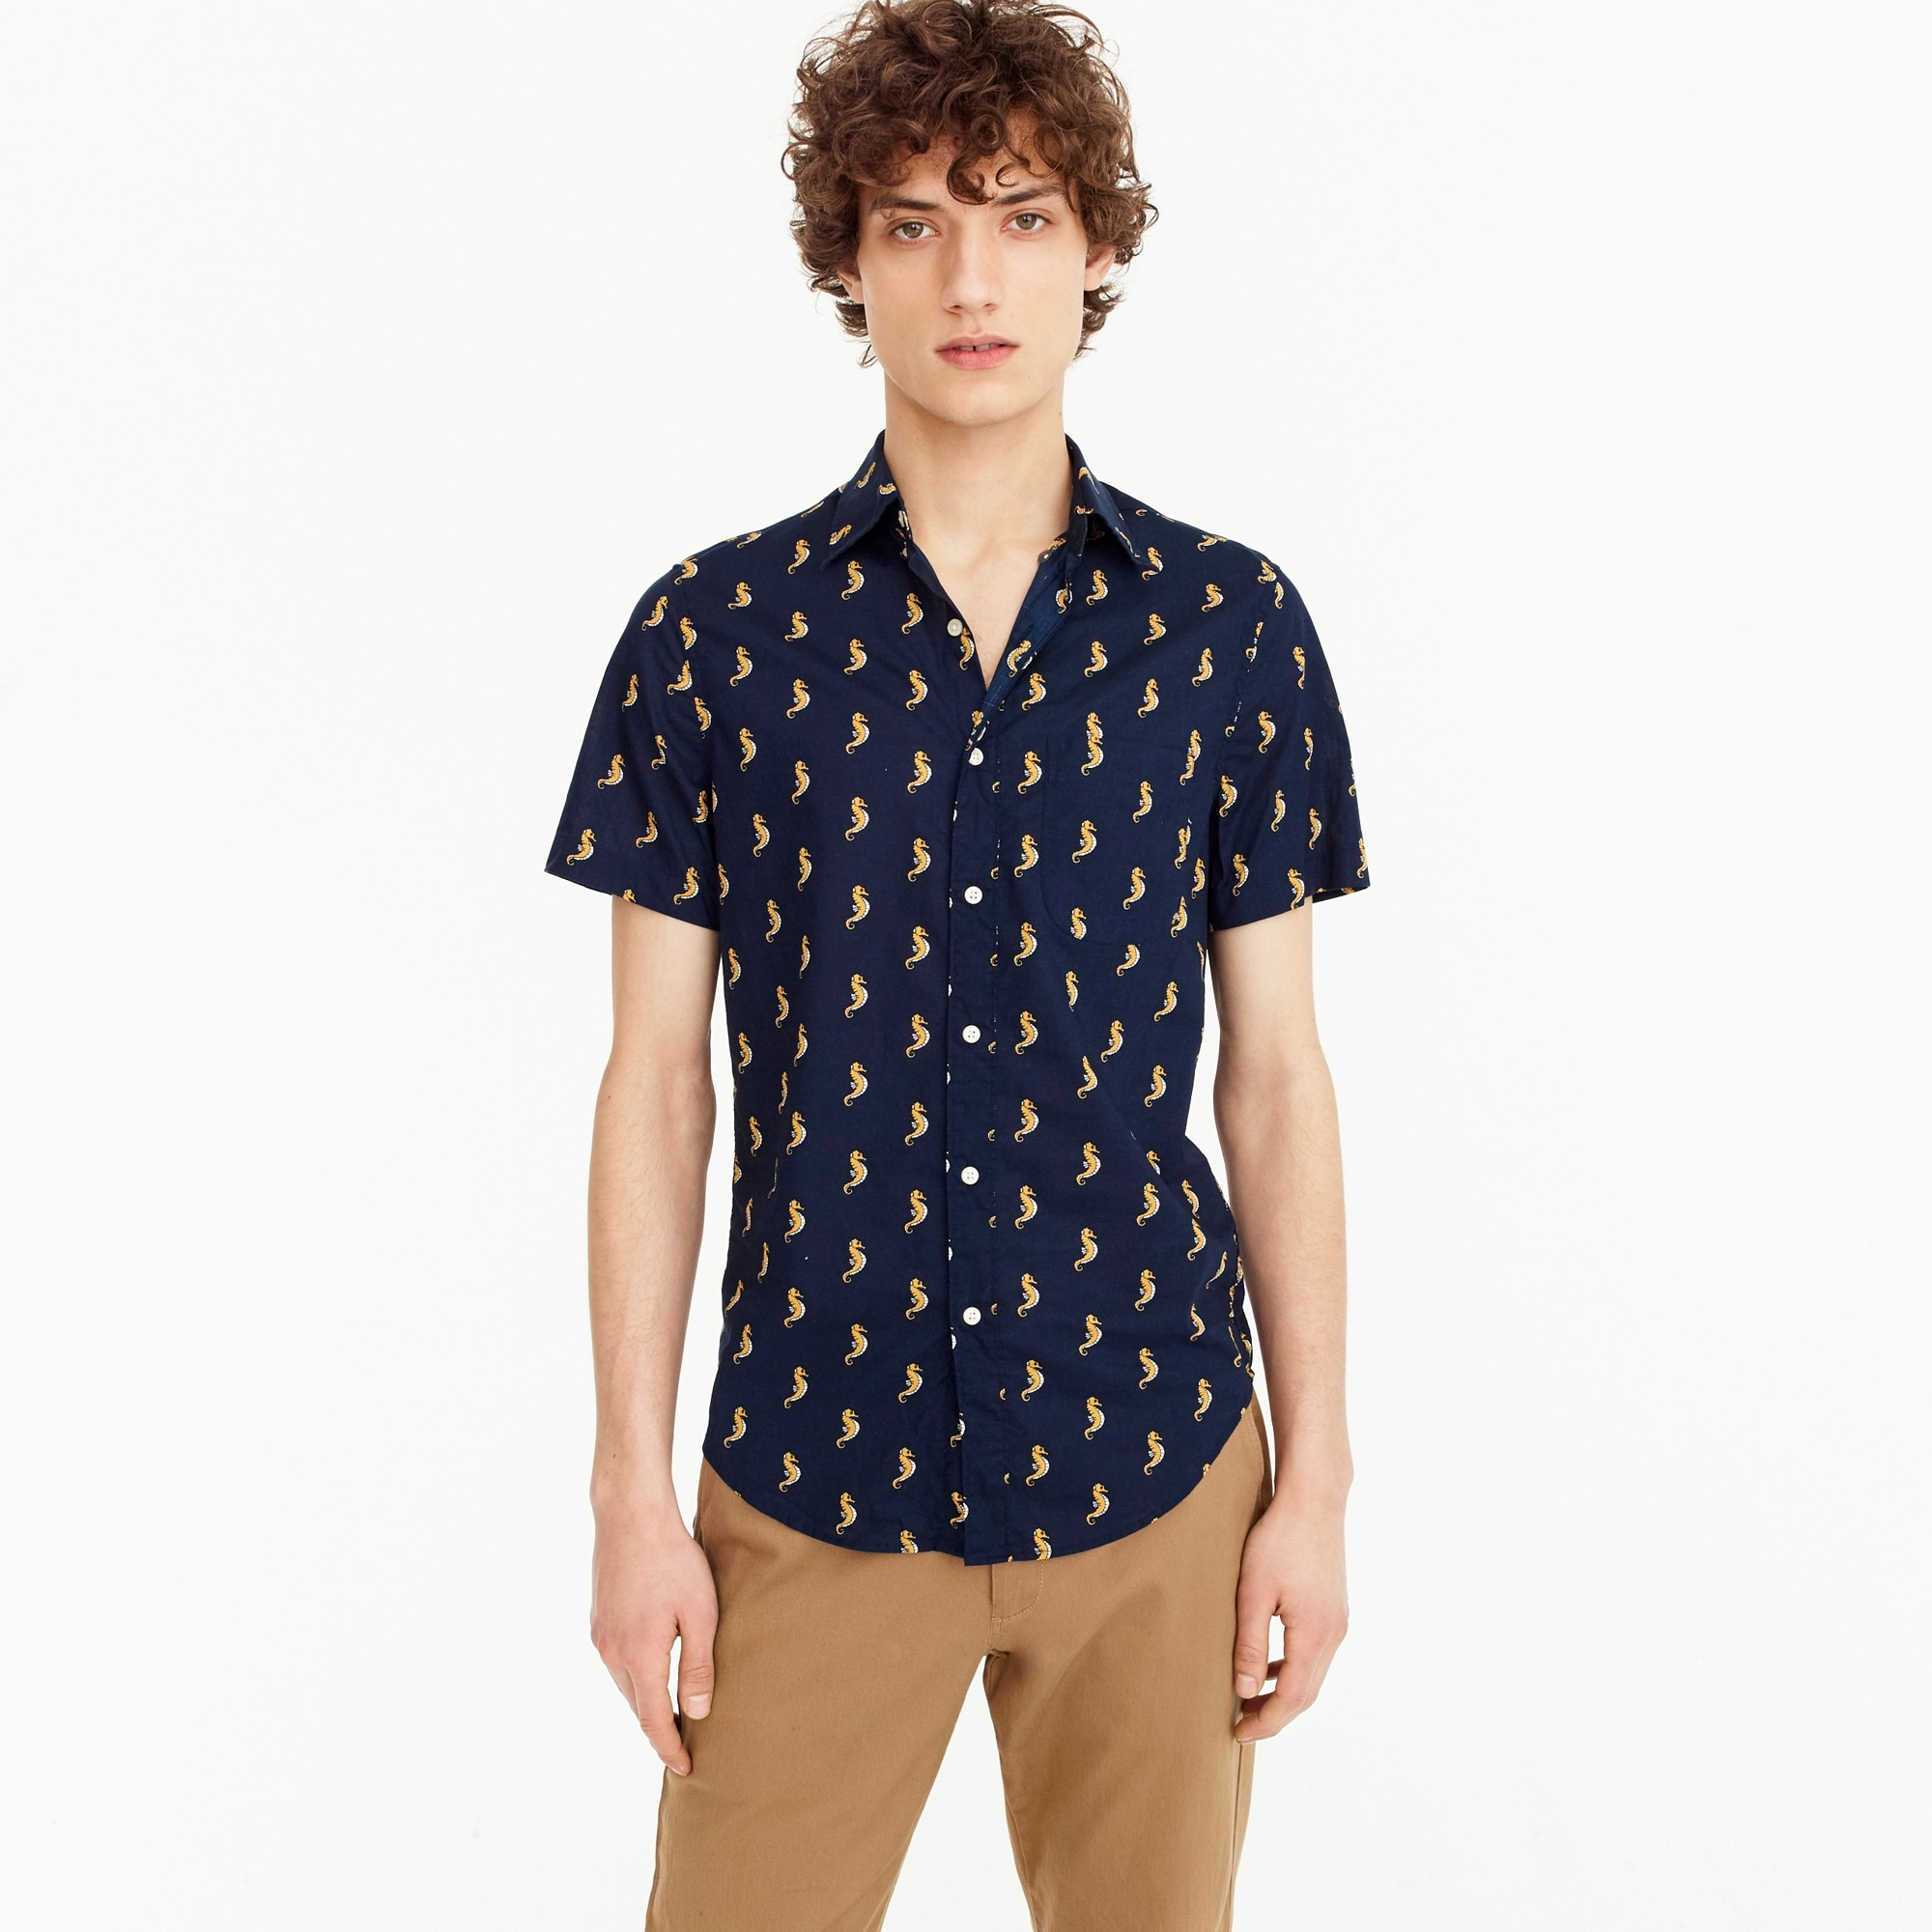 Image 1 for Slim stretch short-sleeve Secret Wash shirt in seahorse print